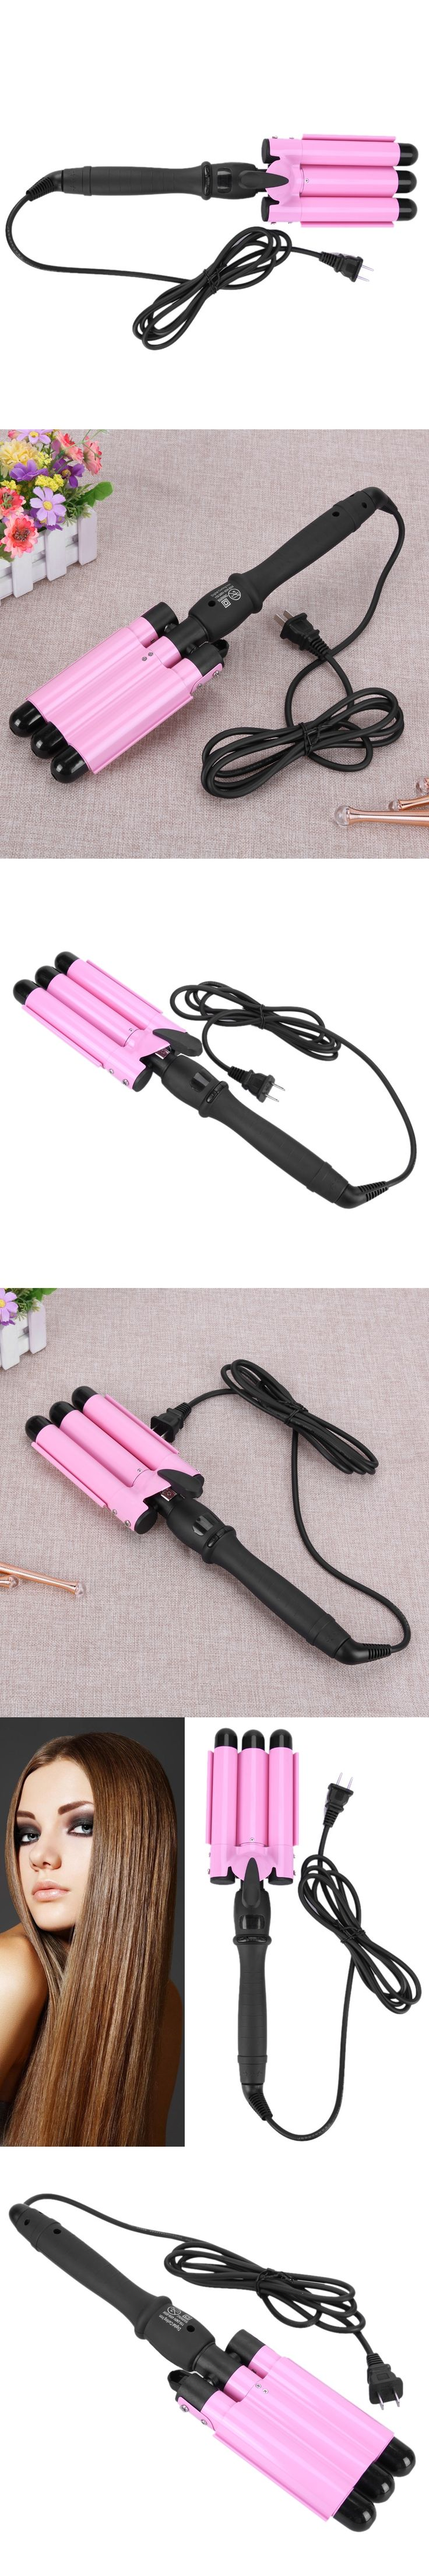 25MM Heat Conductor Hair Curling Iron Waver Straight Curly Hair Style Curls Tool Curling Wave Machine Hair Curlers Rollers Irons